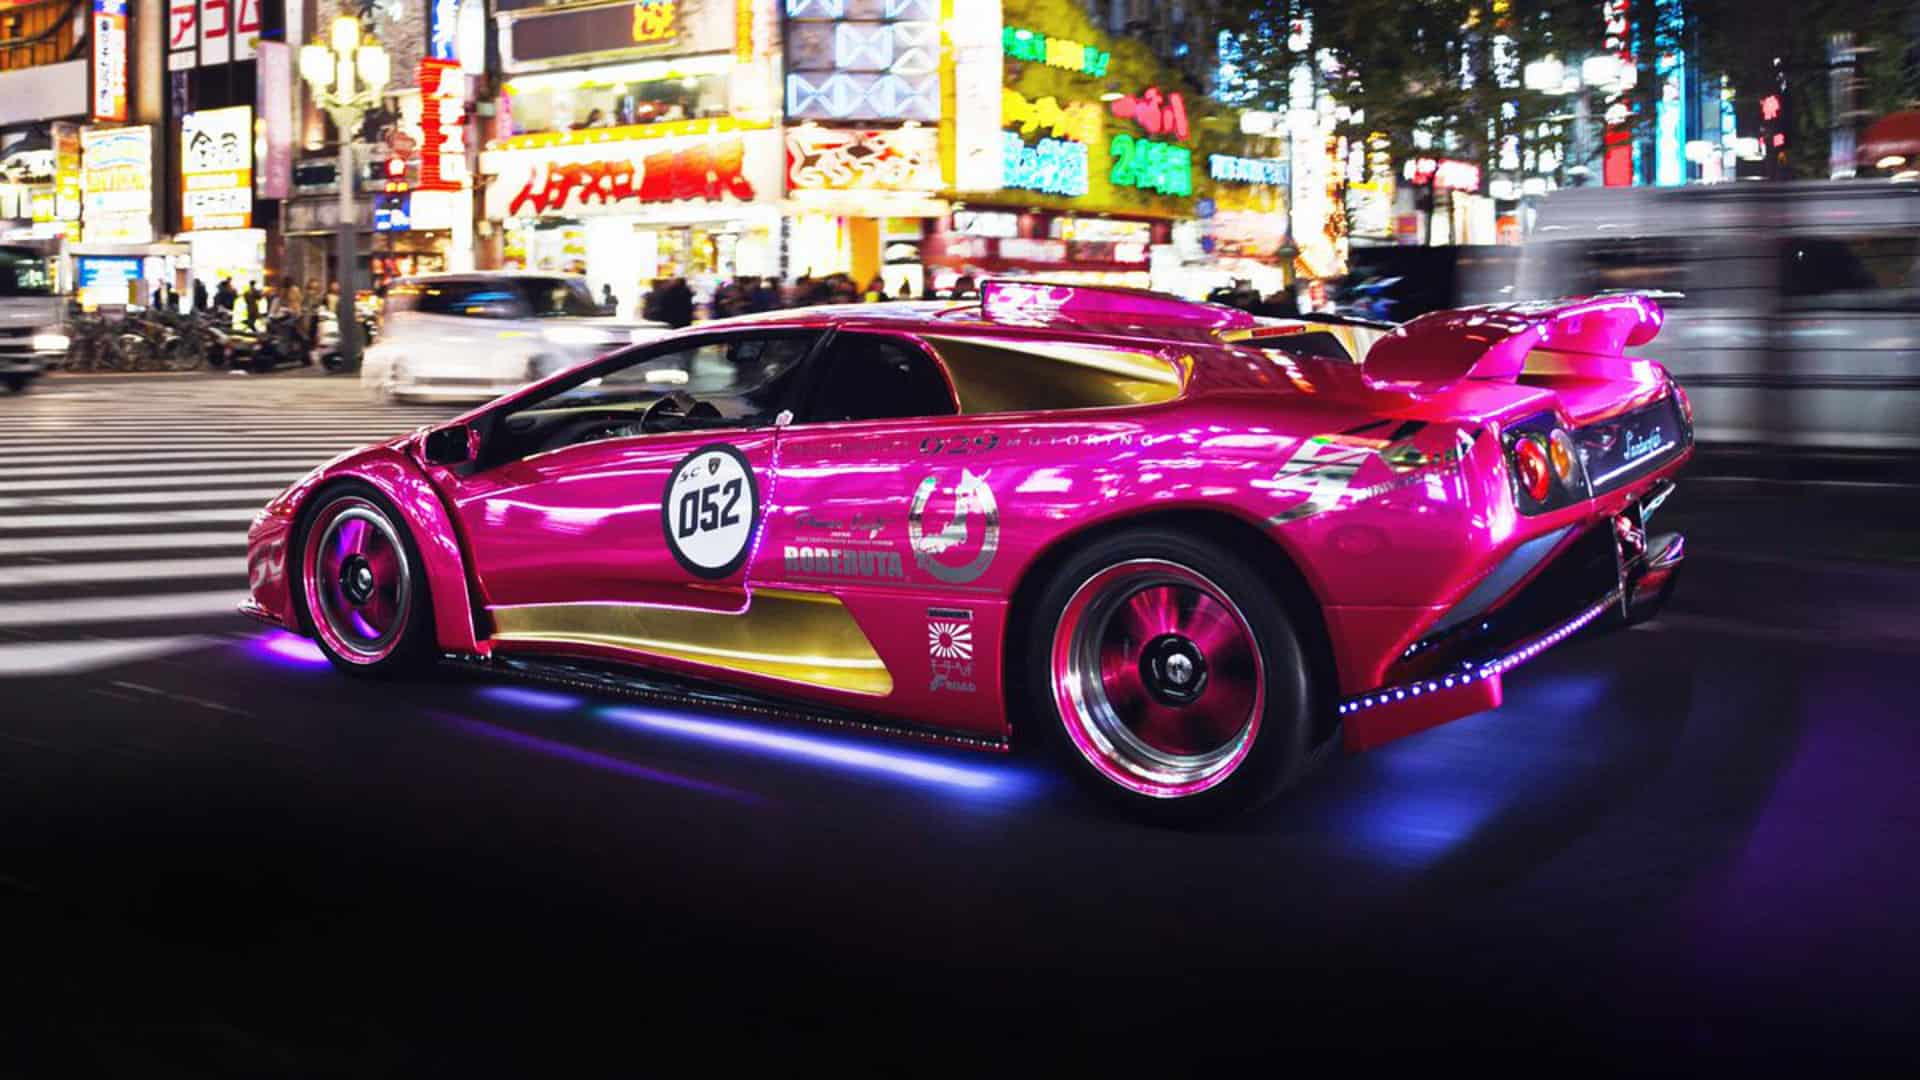 Top Gear Series 25 Episode 3 takes the guys to Japan for a